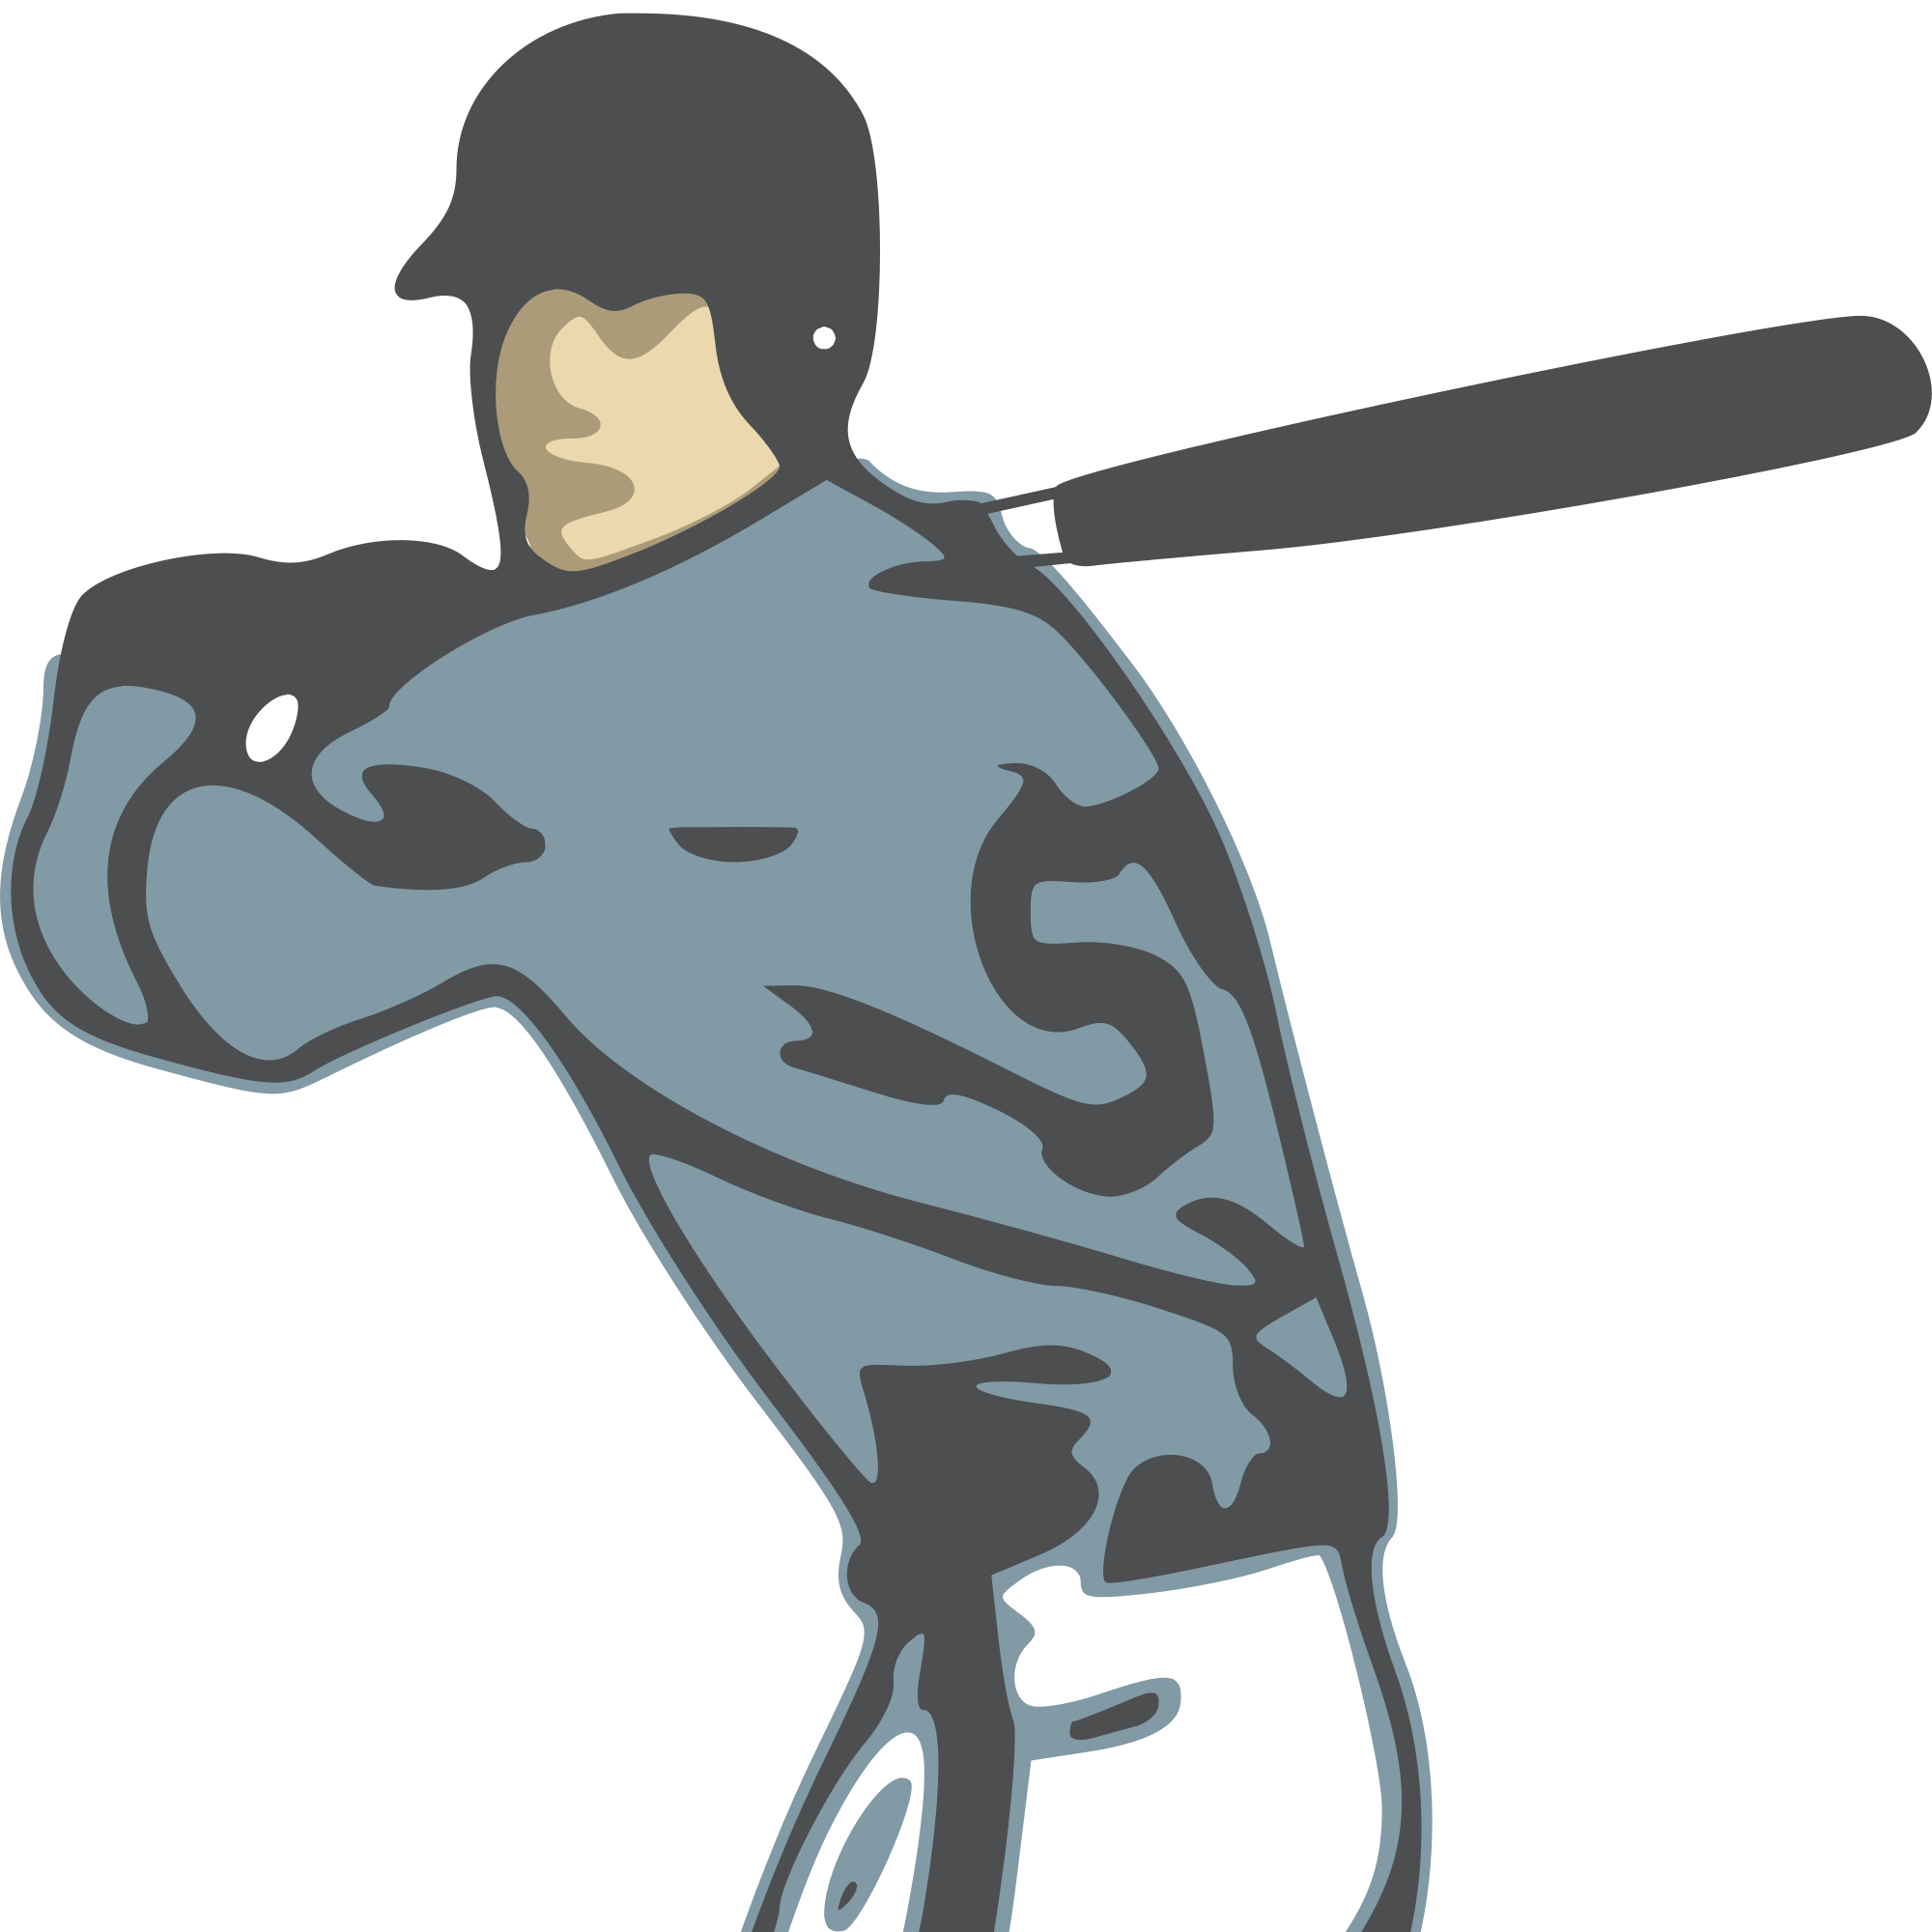 Sports baseball clipart clip art free library Baseball Batter Clipart at GetDrawings.com | Free for personal use ... clip art free library